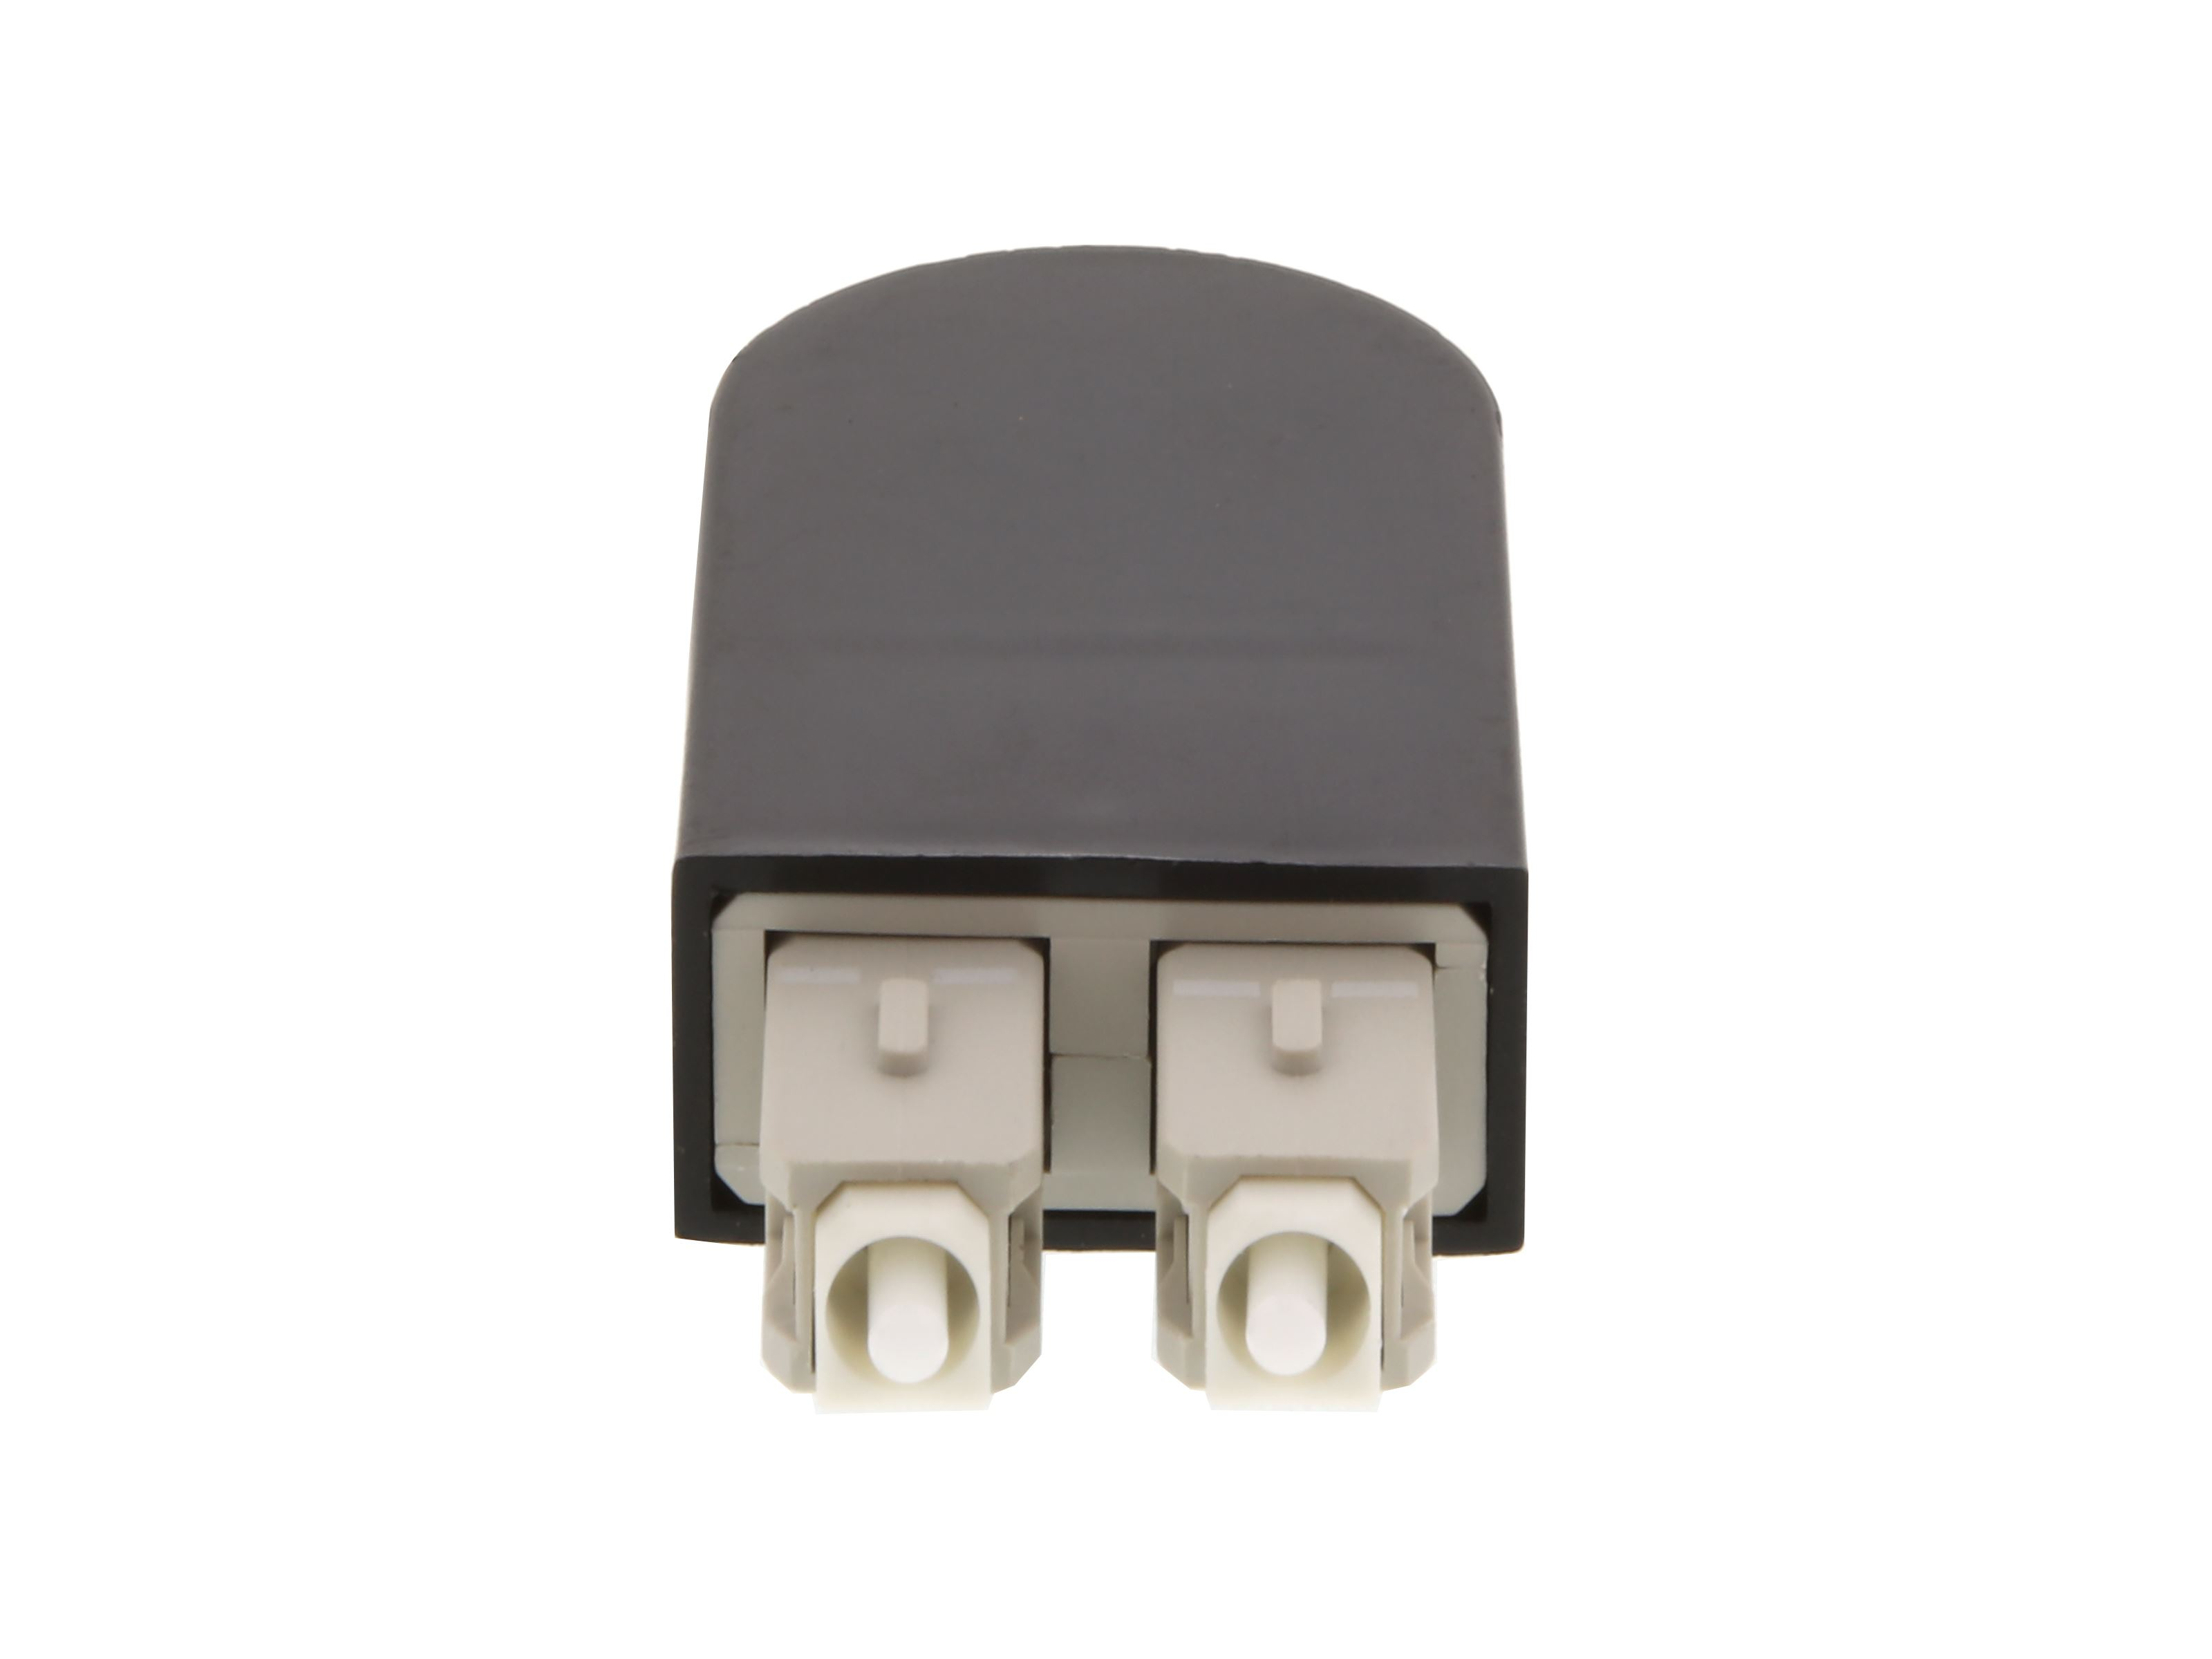 Sc Fiber Optic Loopback Adapter 625125 Computer Cable Store Usb Wiring Connector Picture Of 625 125